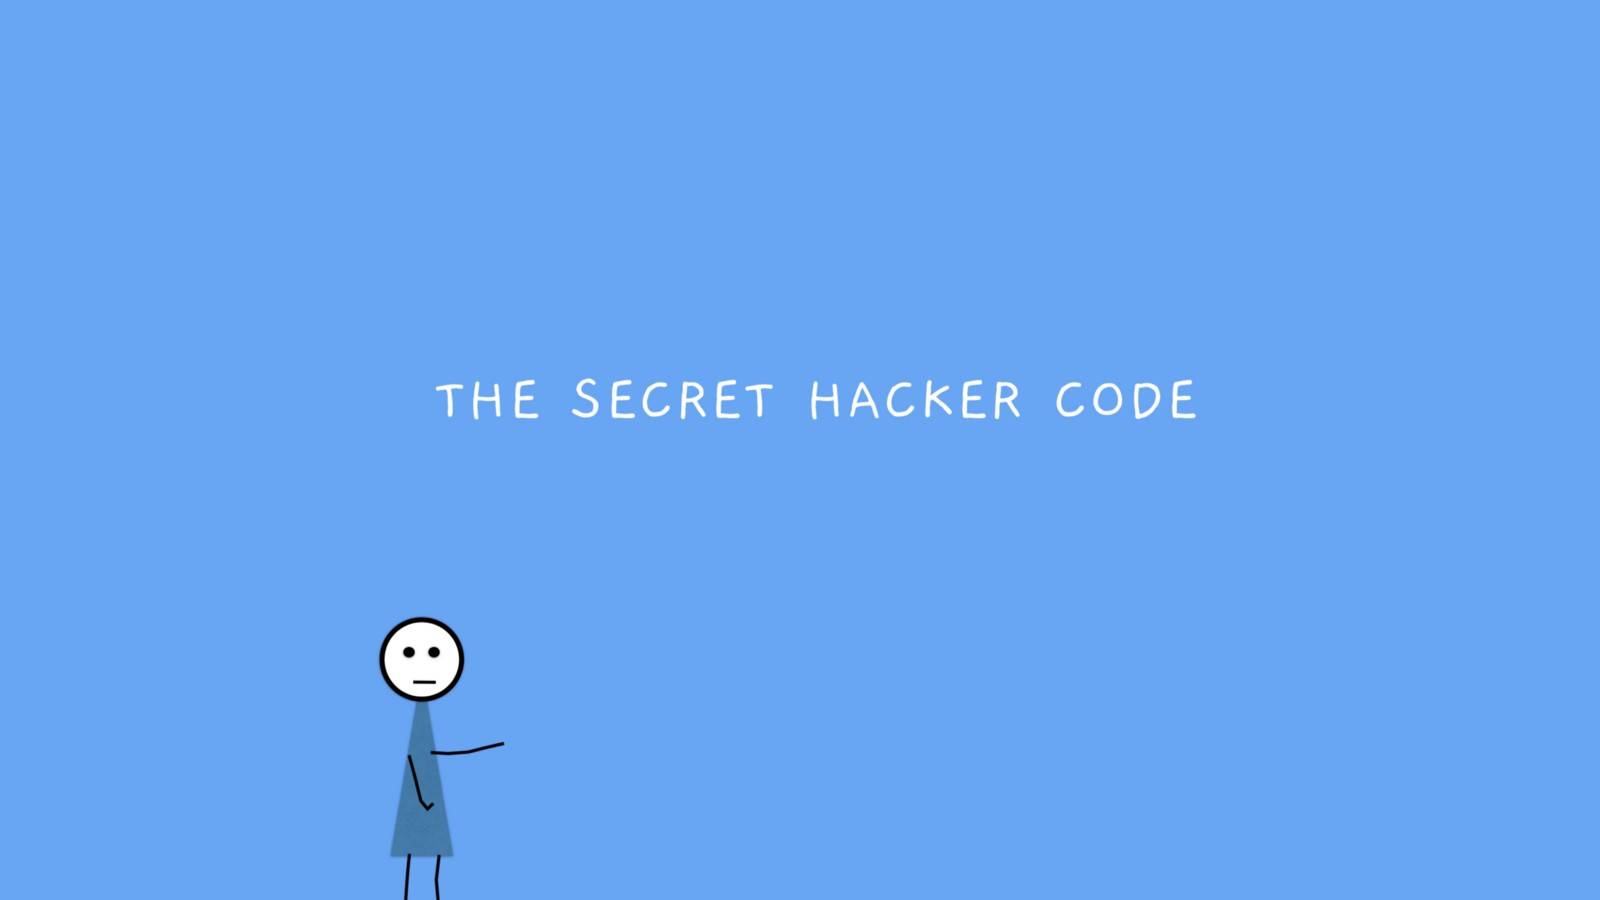 The Secret Hacker Code - By Chris Castiglione